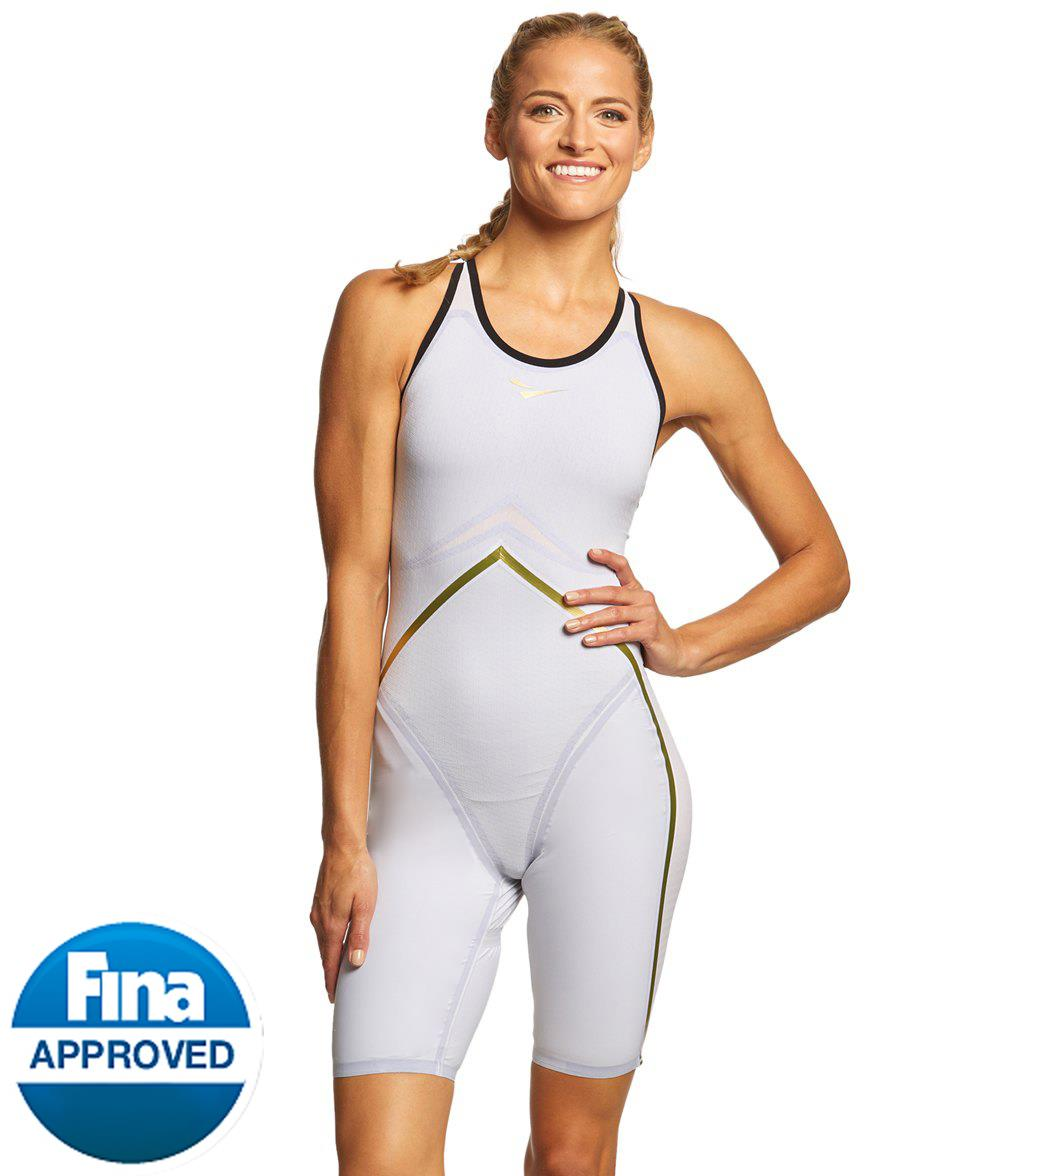 9ffa3f1b2e5c8 FINIS Women s Rival Open Back Kneeskin Tech Suit Swimsuit at SwimOutlet.com  - Free Shipping